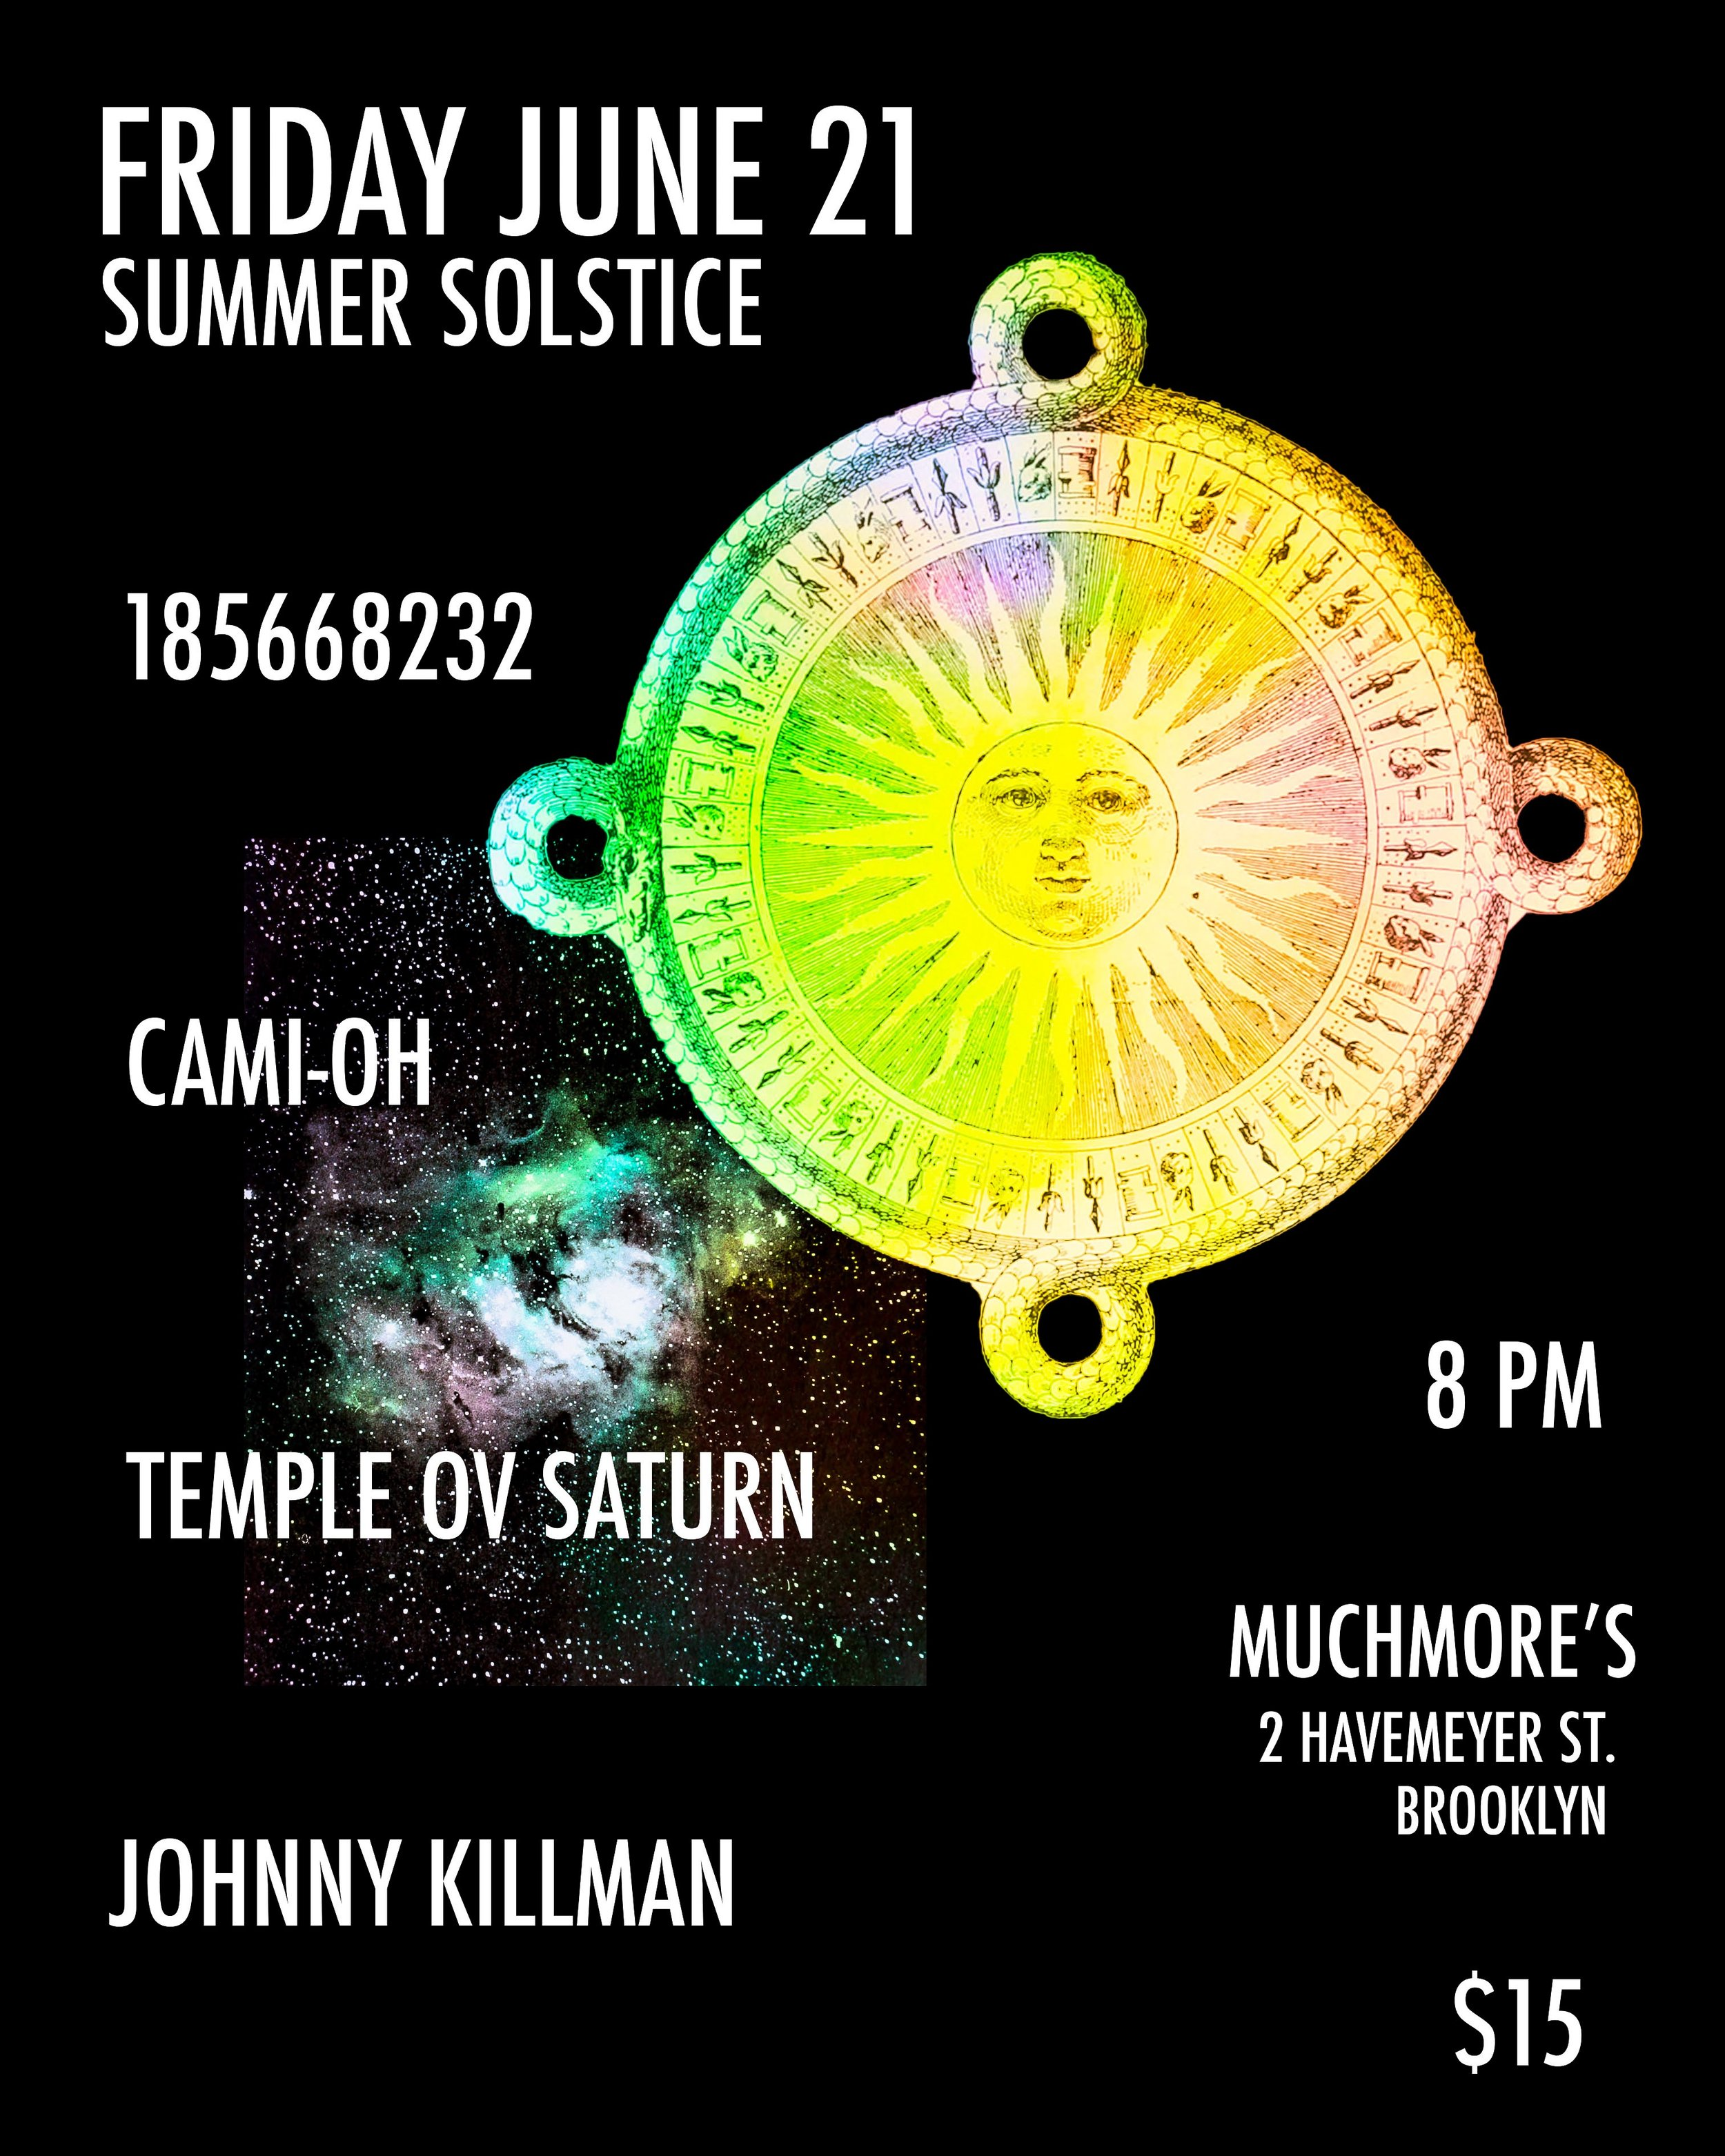 June 21 - Muchmore's - Temple ov Saturn, 185668232, Cami-Oh, Johnny Killman